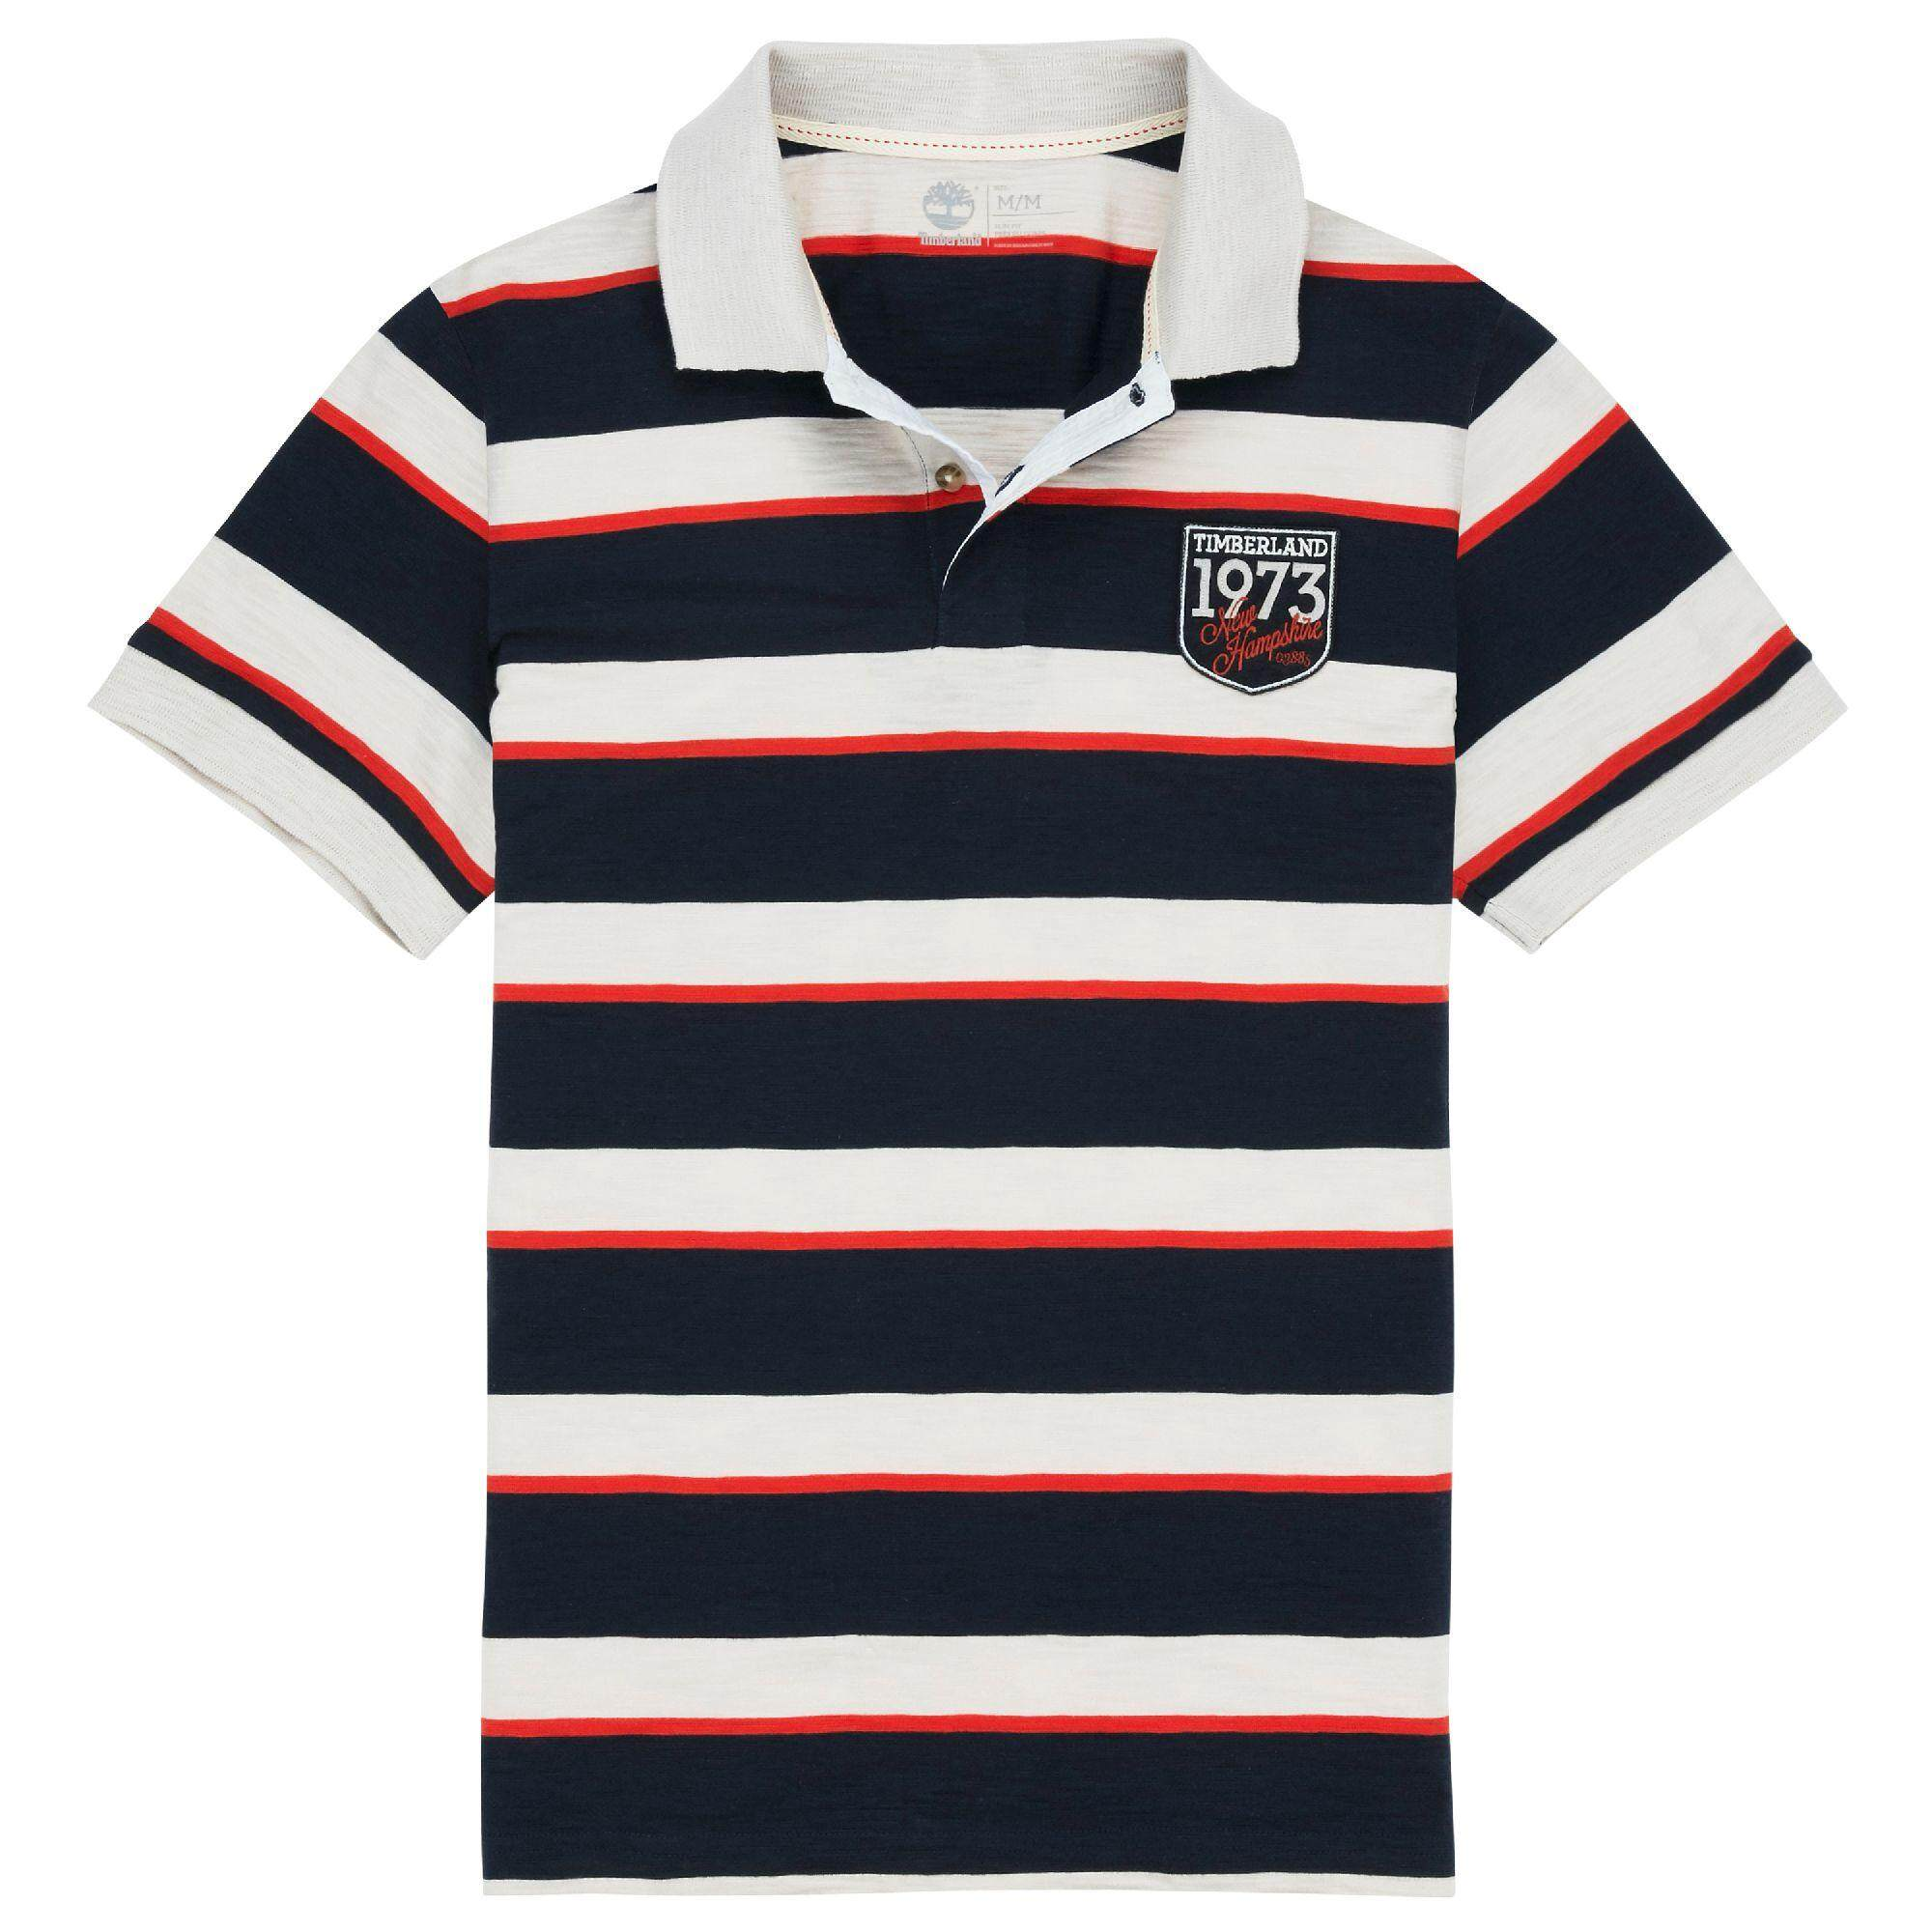 Timberland Malaysia Products For The Best Prices In Kemeja Pria Short Shirt Sy860 Polo Shirts